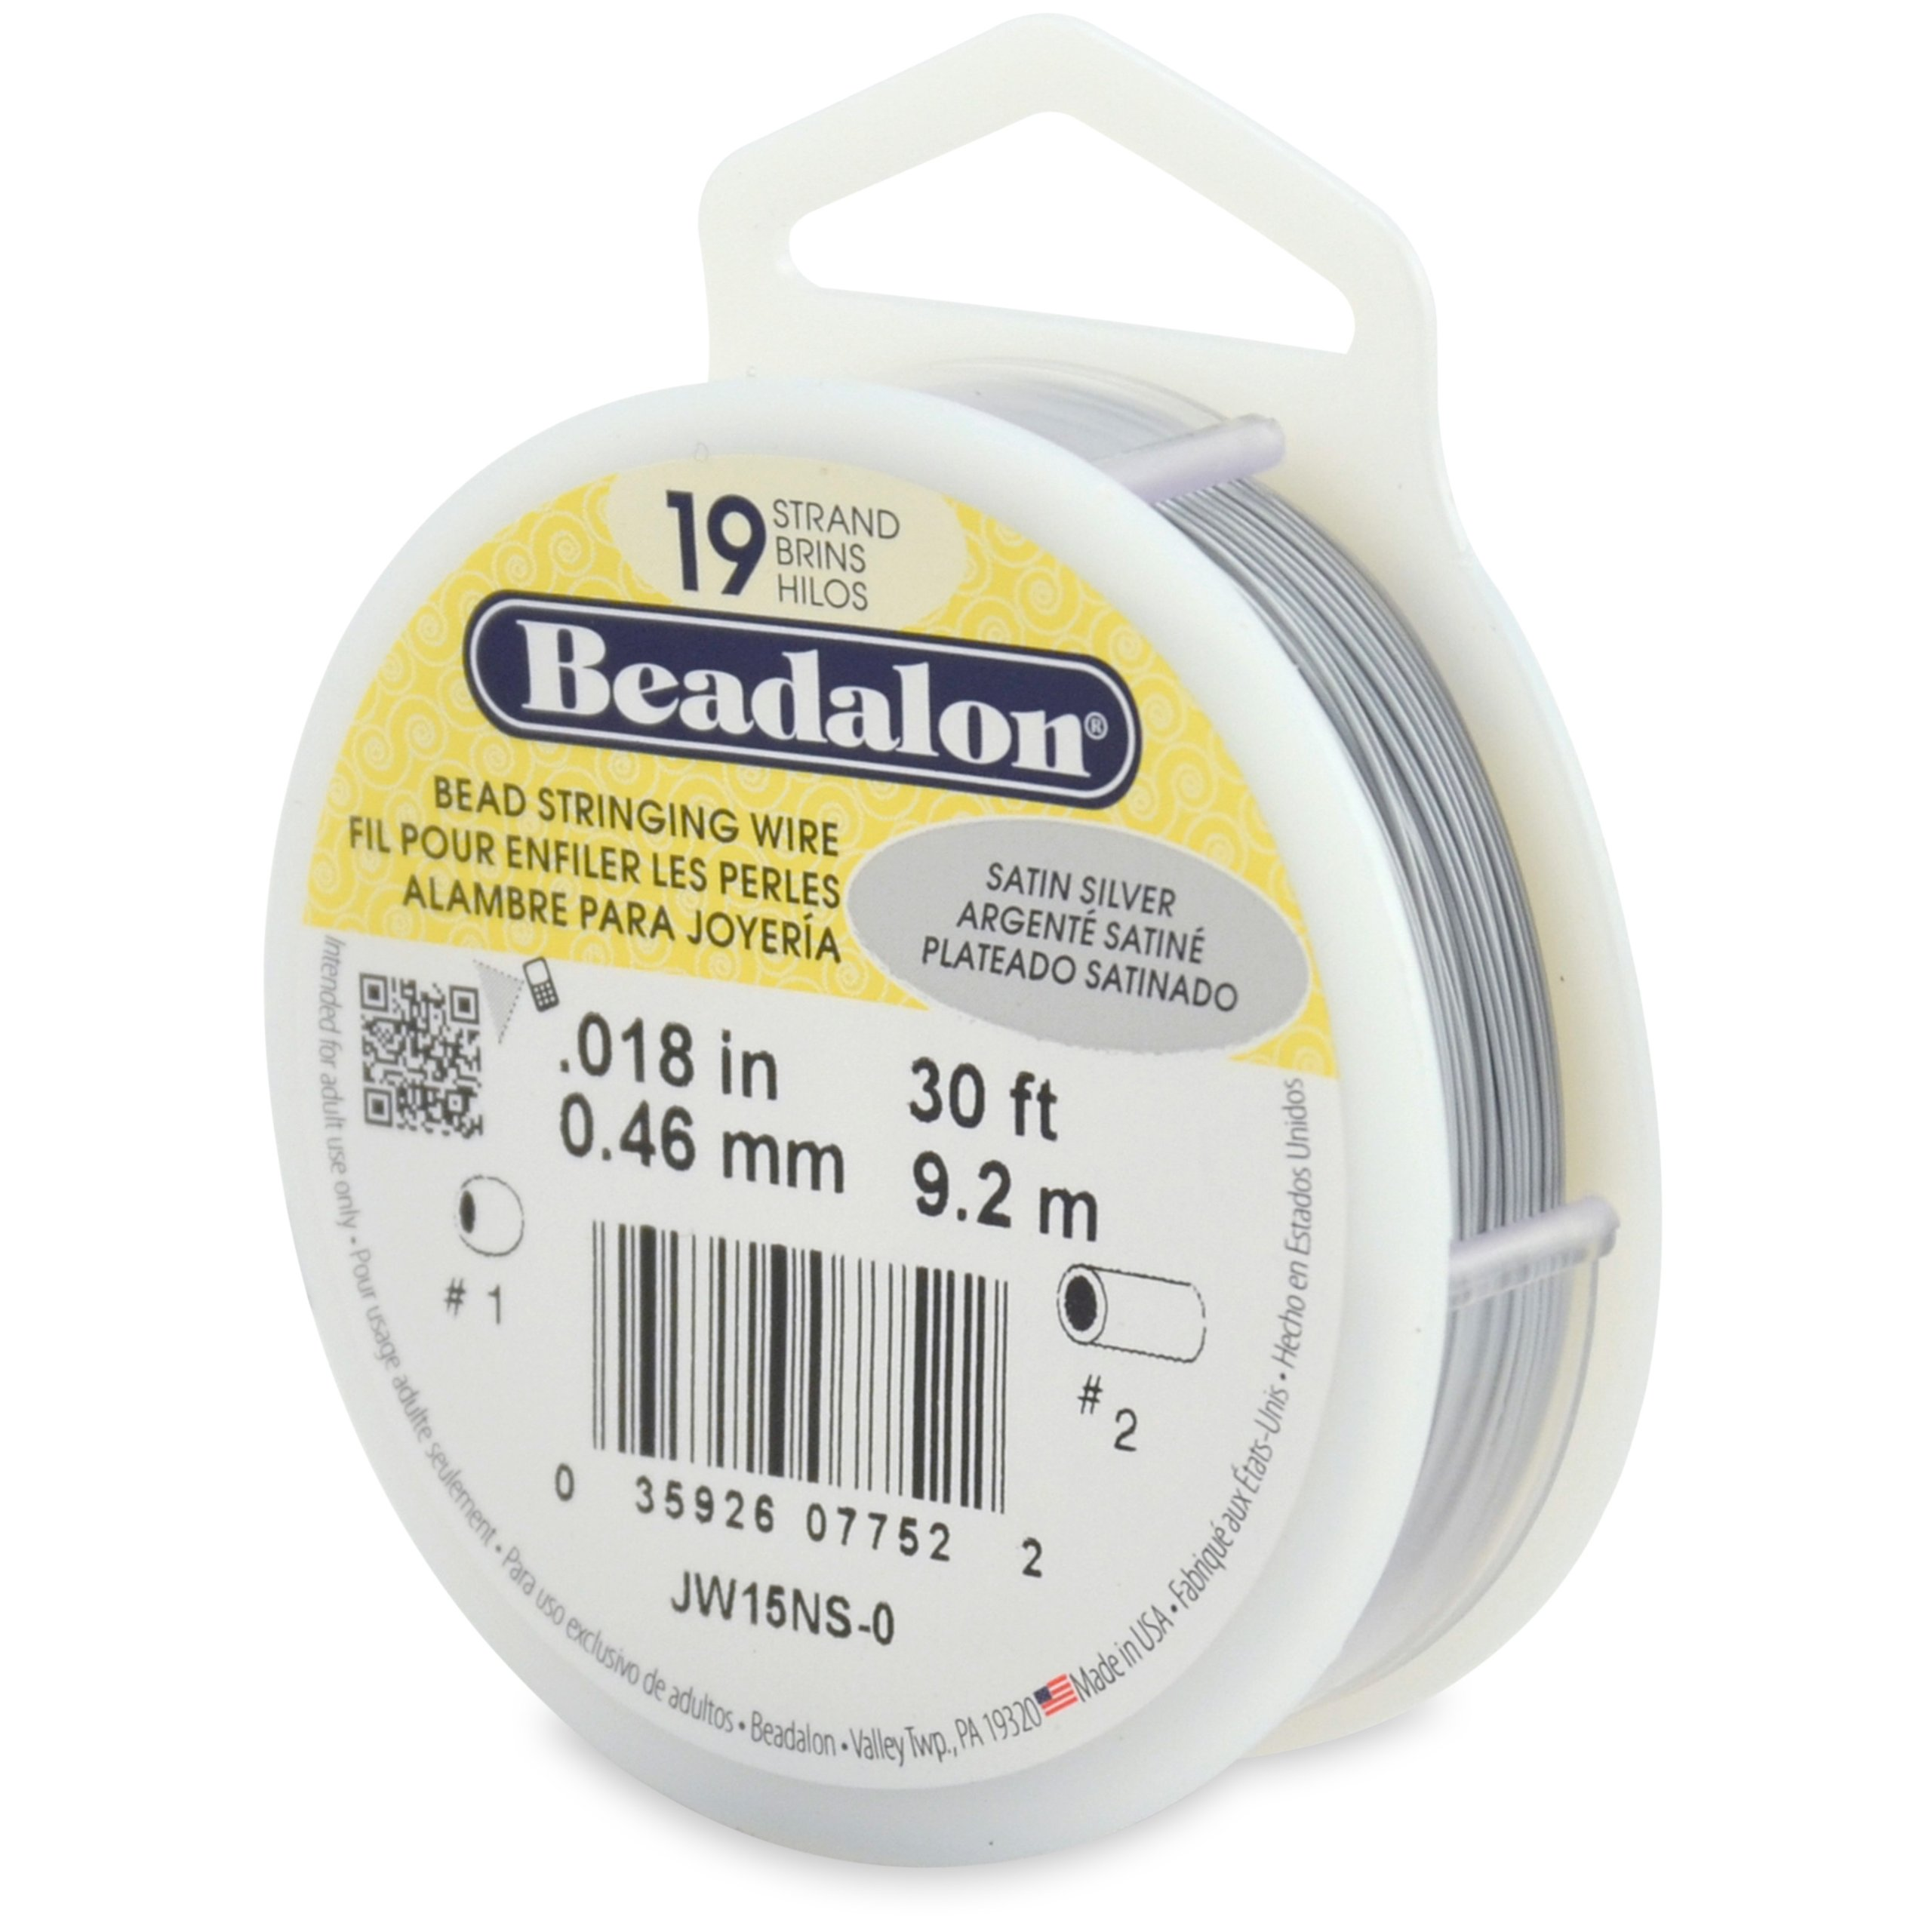 Beadalon 19-Strand Bead Stringing Wire, 0.018-Inch, Satin Silver, 30-Feet